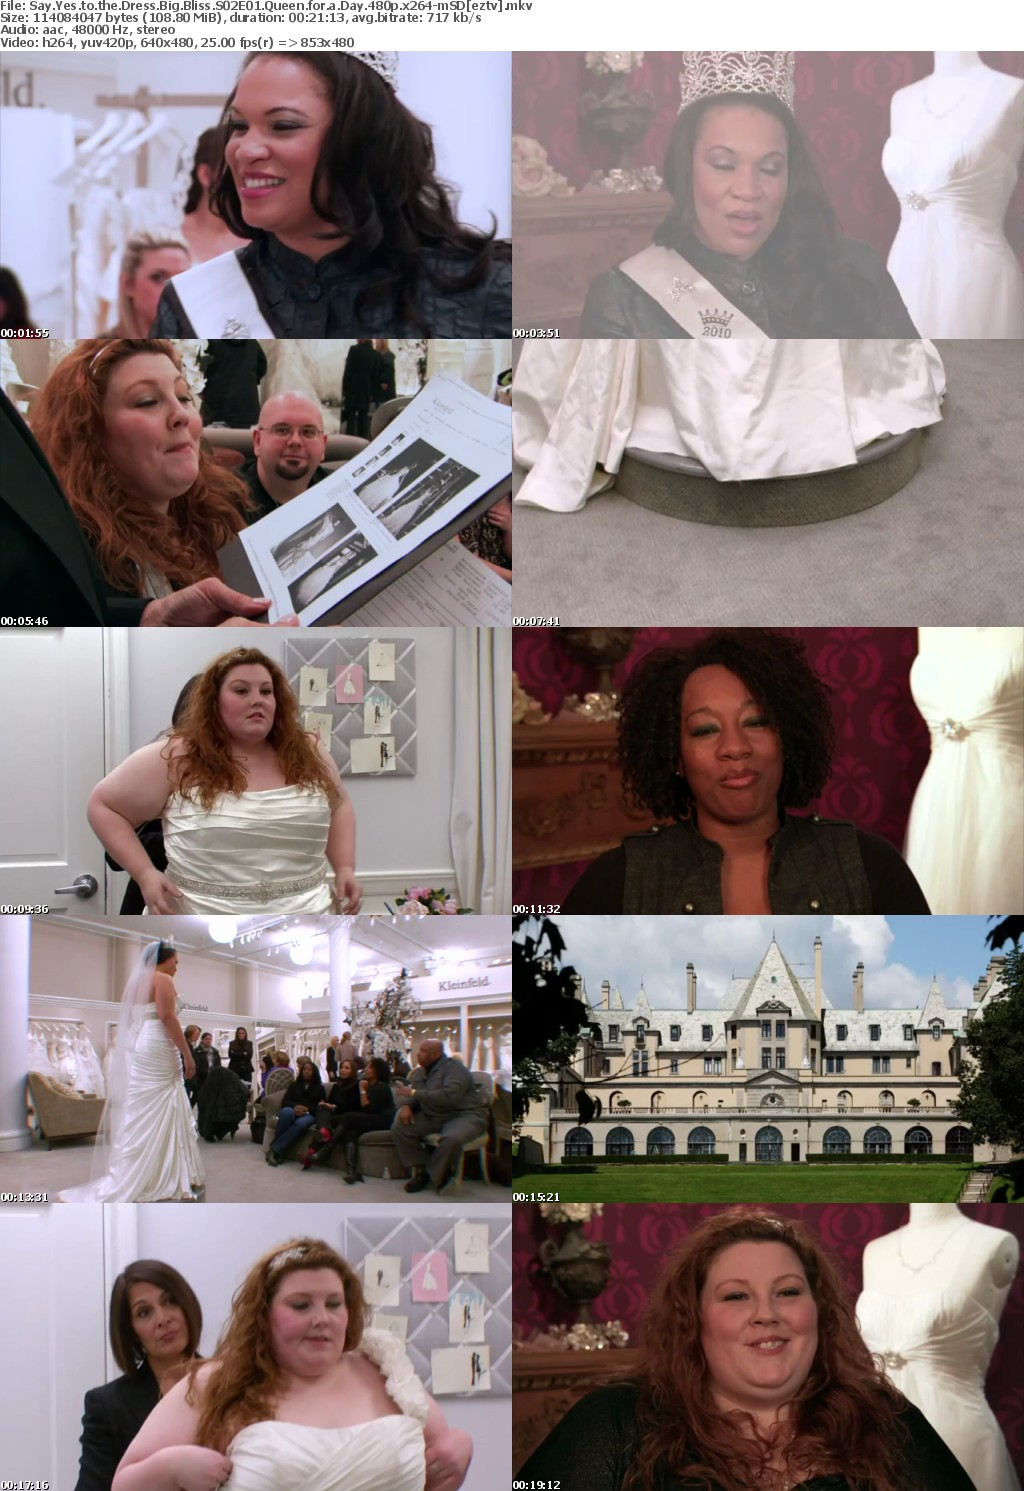 Say Yes to the Dress Big Bliss S02E01 Queen for a Day 480p x264-mSD